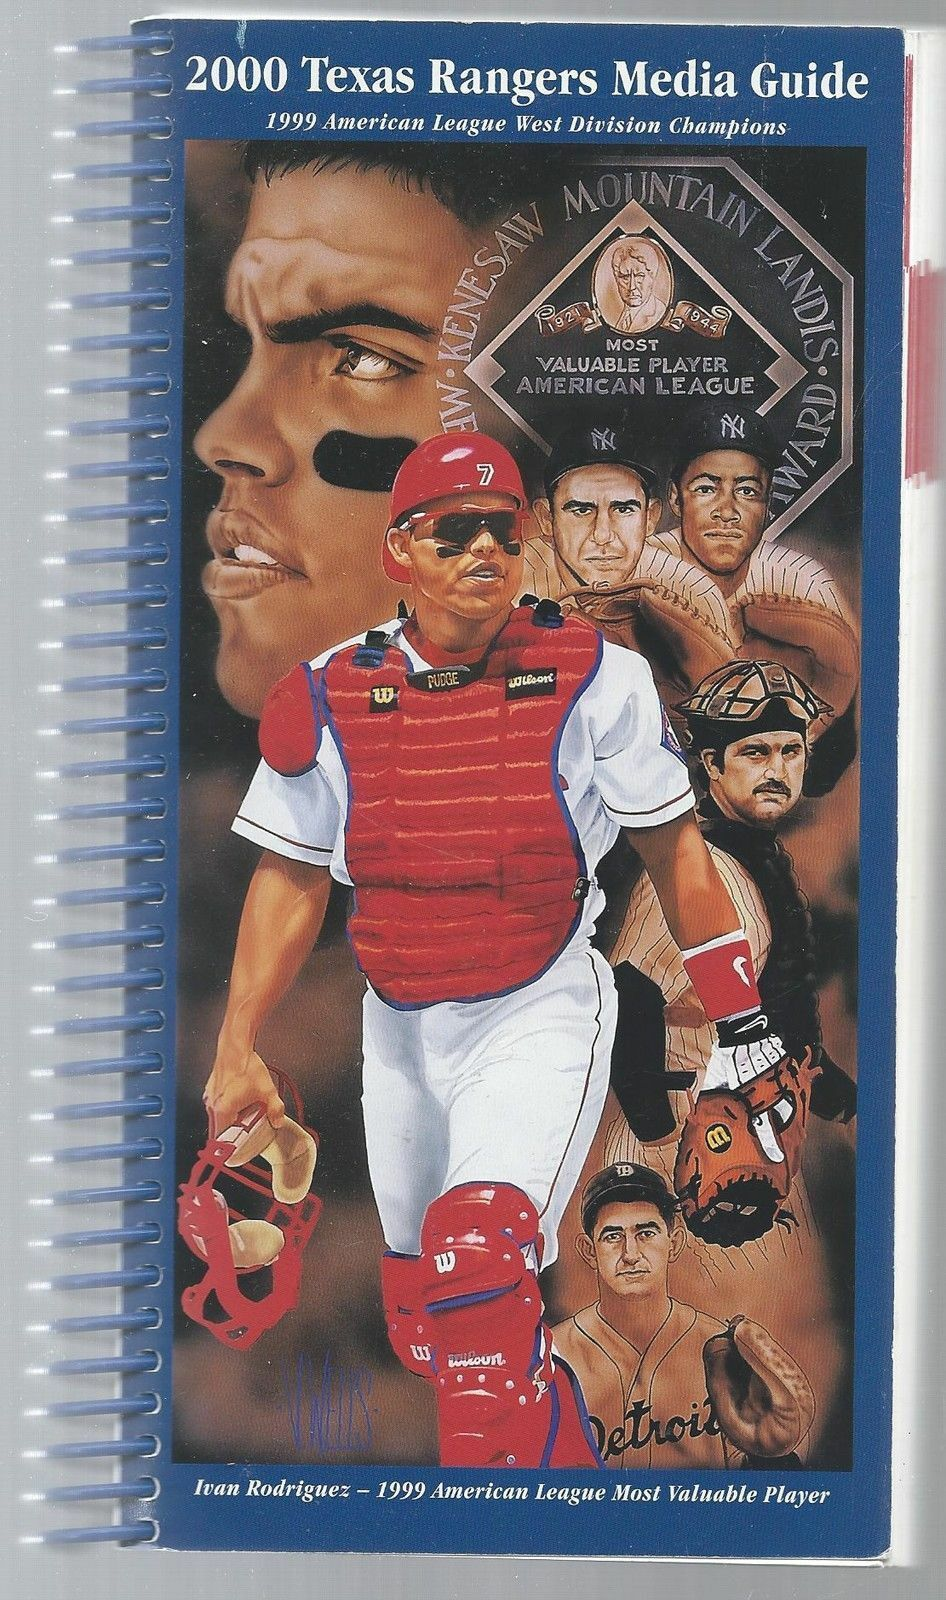 2000 Texas Rangers Baseball MLB Media Guide - Ivan Rodriguez spiral cover